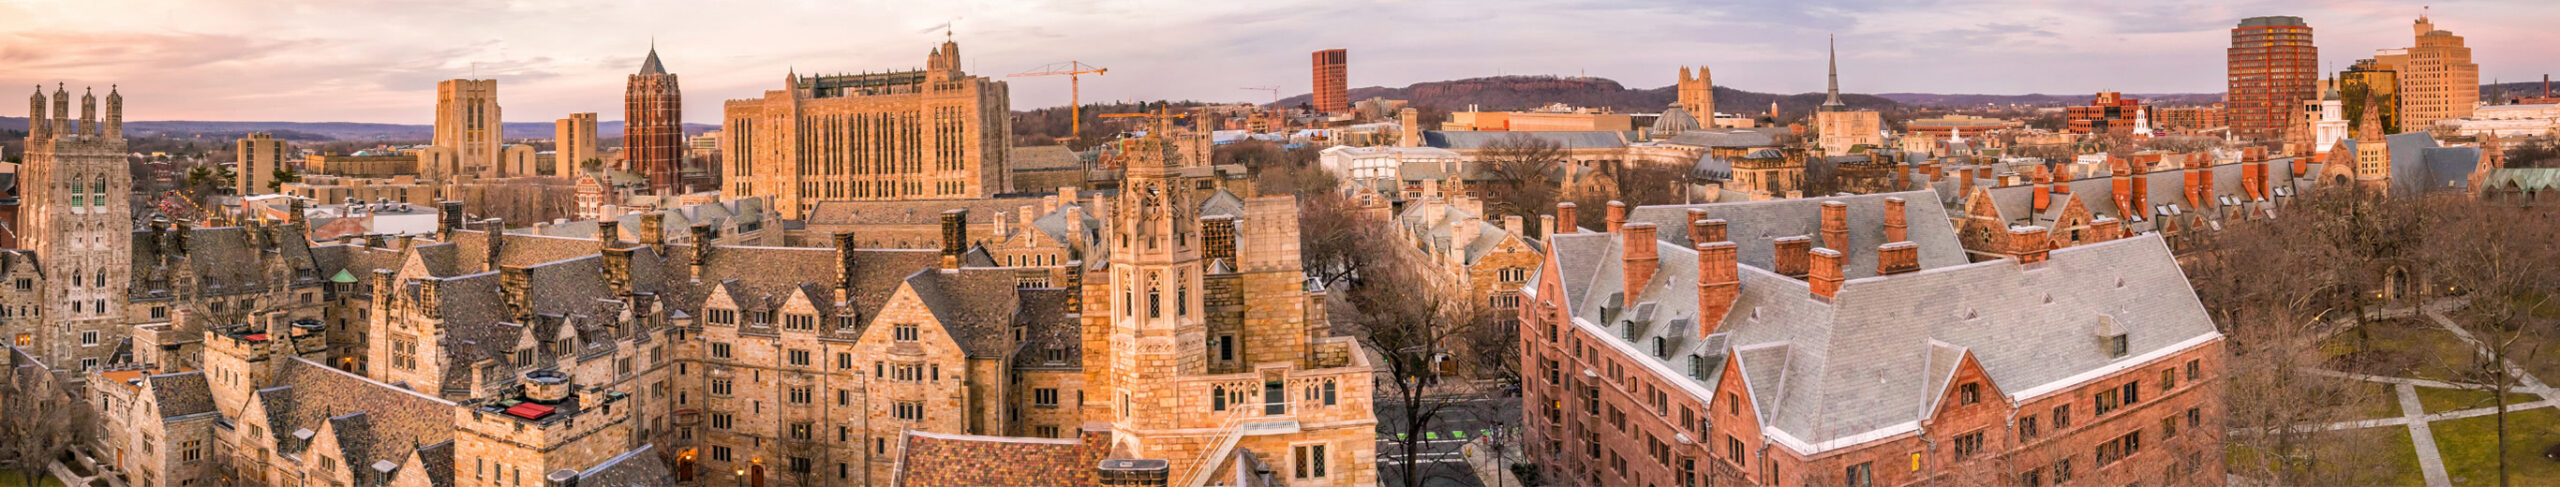 An aerial view of Yale University, New Haven, Campus